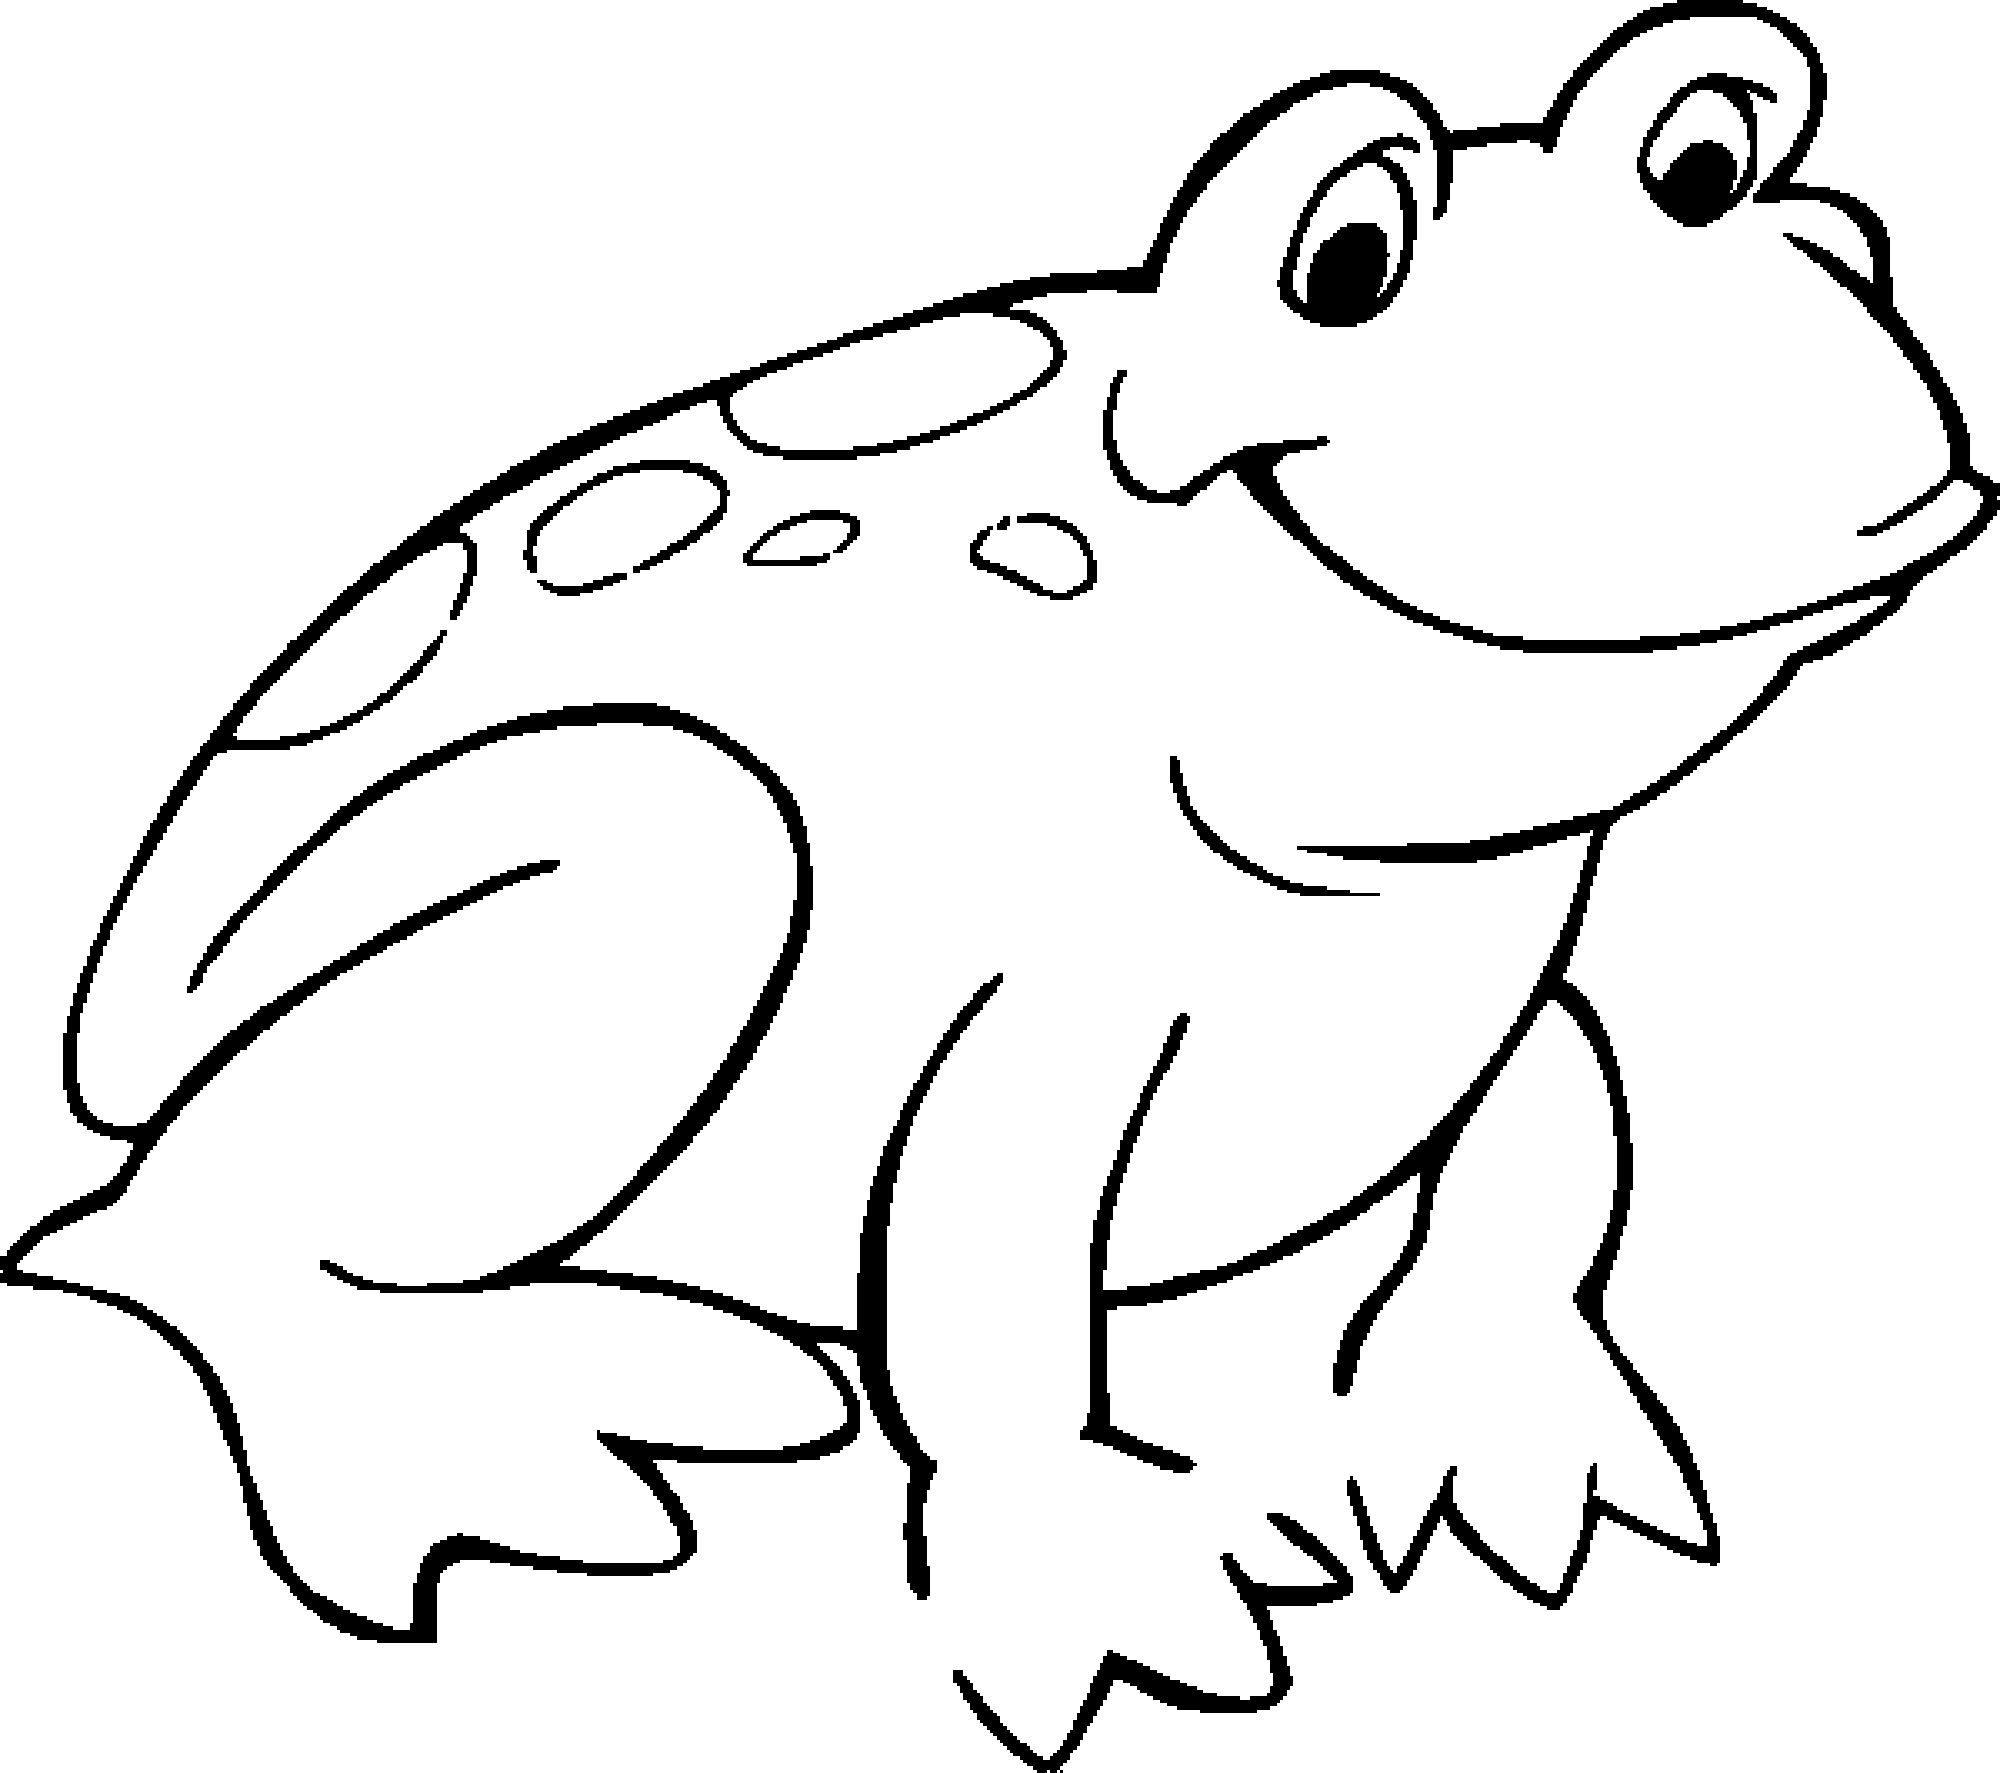 frog coloring book print download frog coloring pages theme for kids book coloring frog